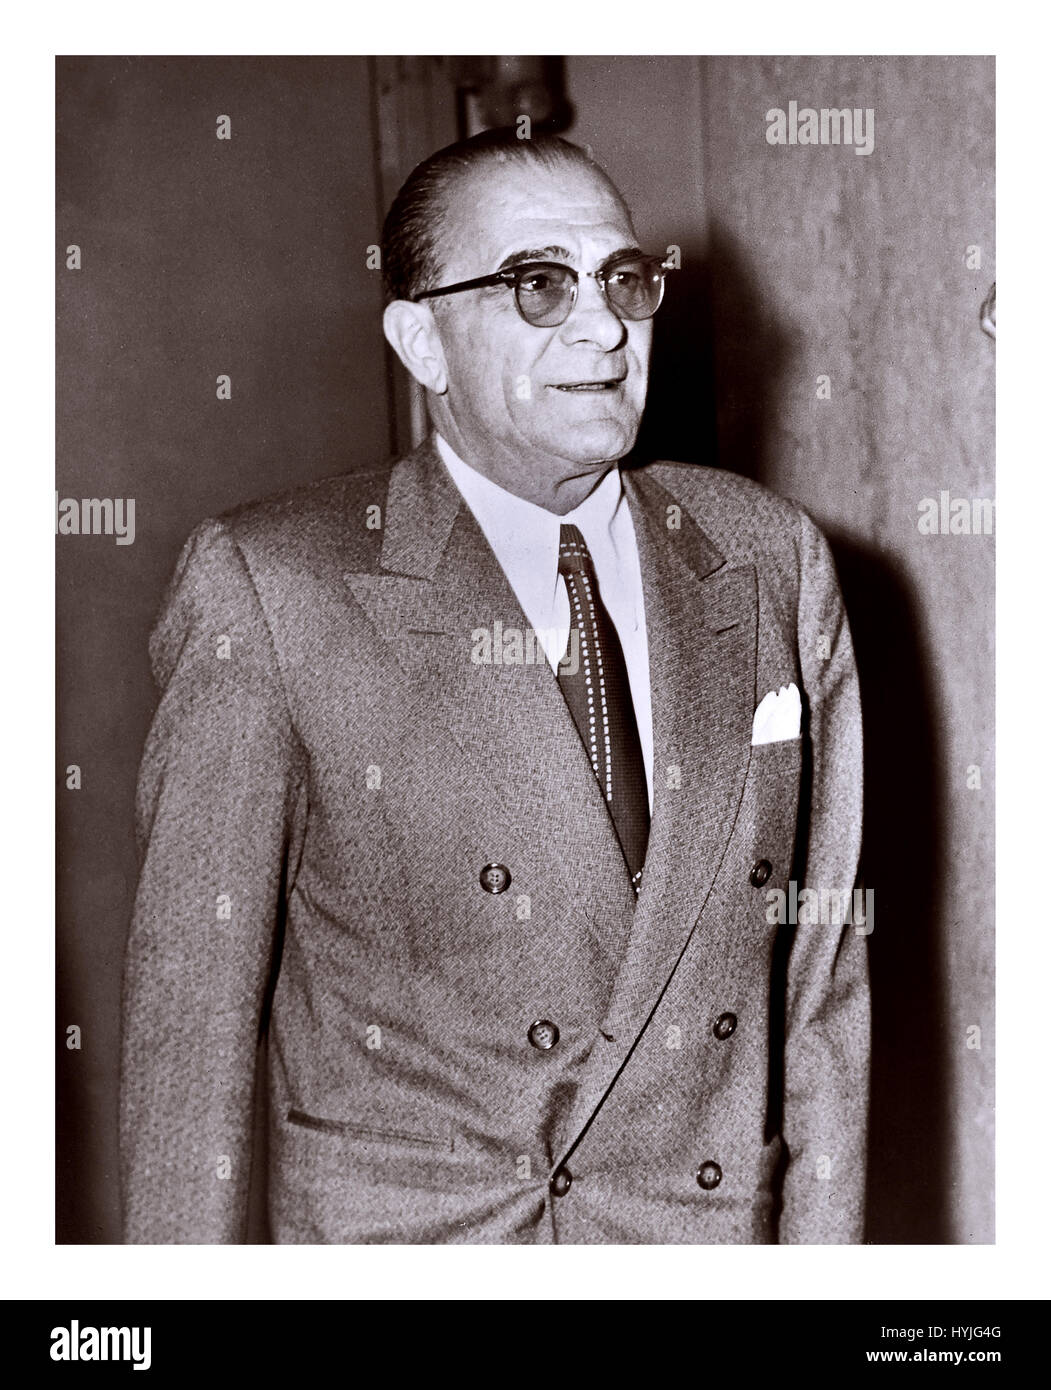 Vito 'Don Vitone' Genovese (November 27, 1897 – February 14, 1969) was an Italian-American mobster who rose - Stock Image